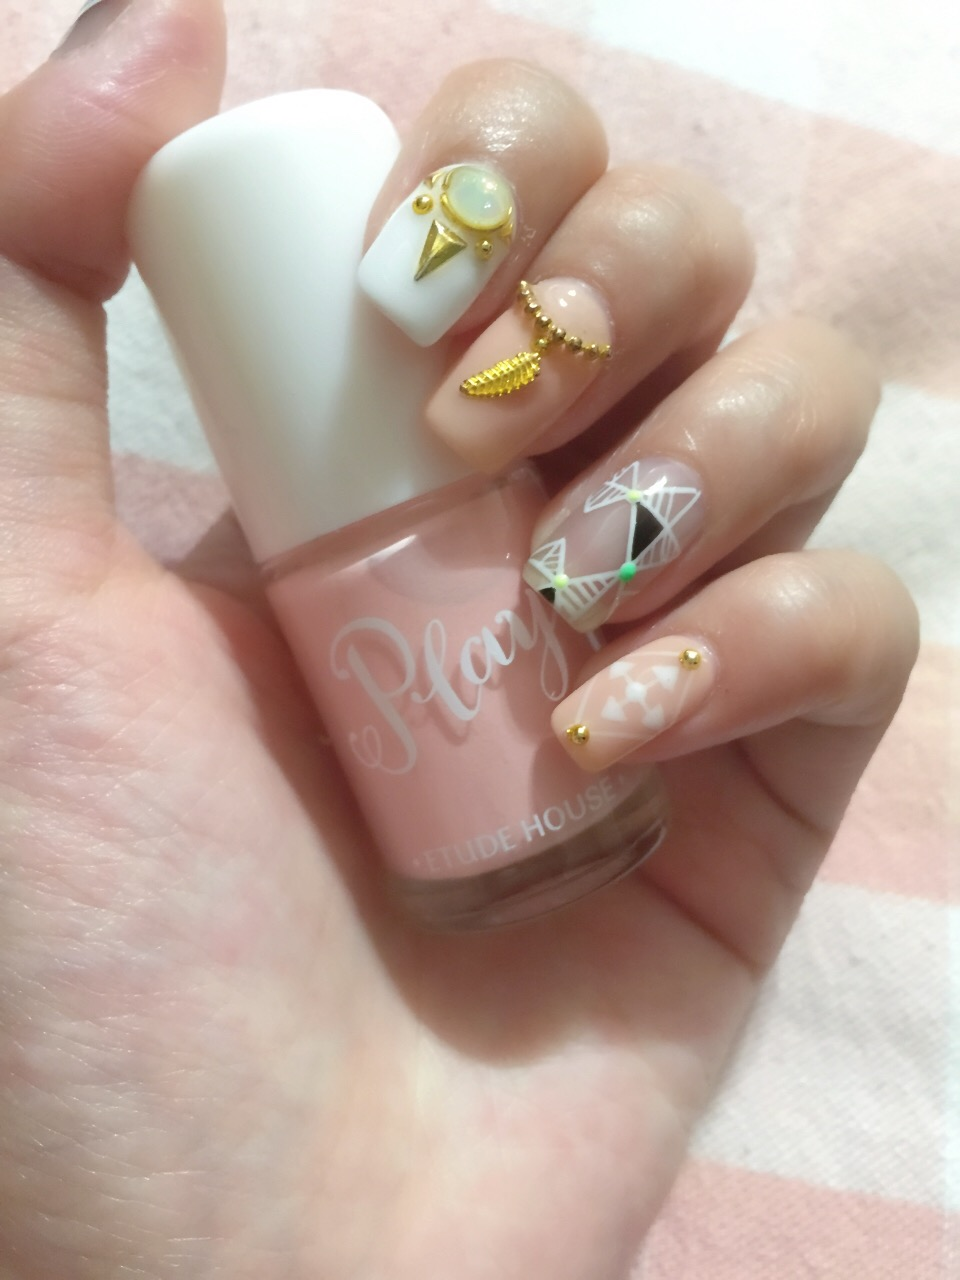 REVIEW: Etude House Play Nails in #1, #4 & #100 – thebeautyverdict